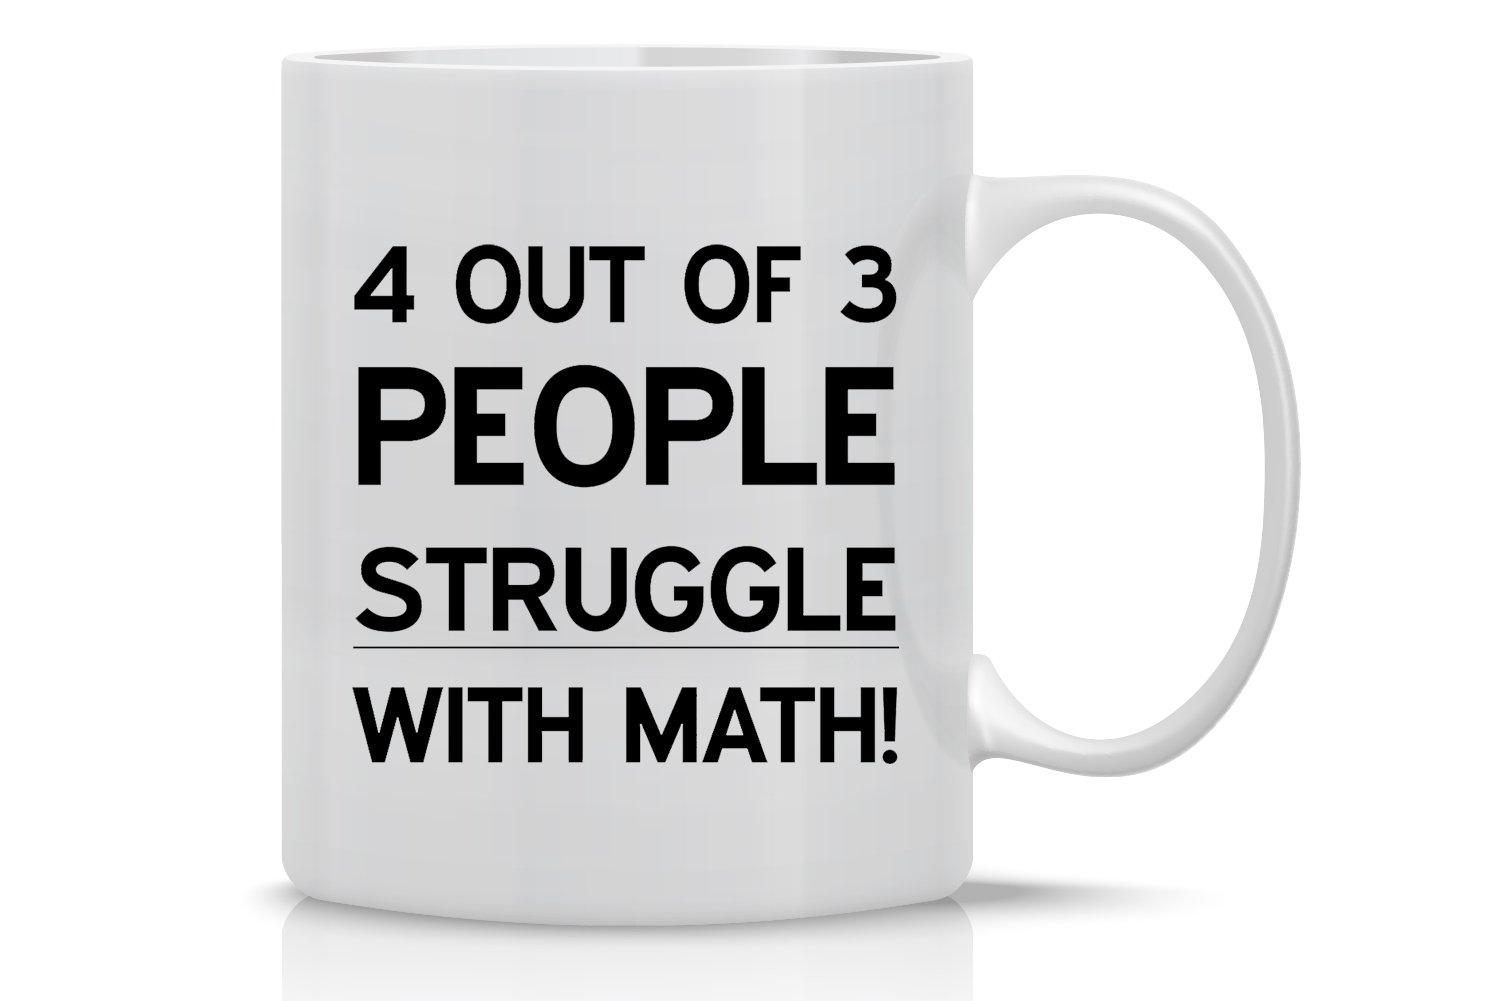 4 Out Of 3 People Struggle With Math Mug - Funny Math Mug - 11OZ Coffee Mug - Funny Sarcastic Coffee Mug - Mugs For Women - Perfect for Mother's Day - By AW Fashions